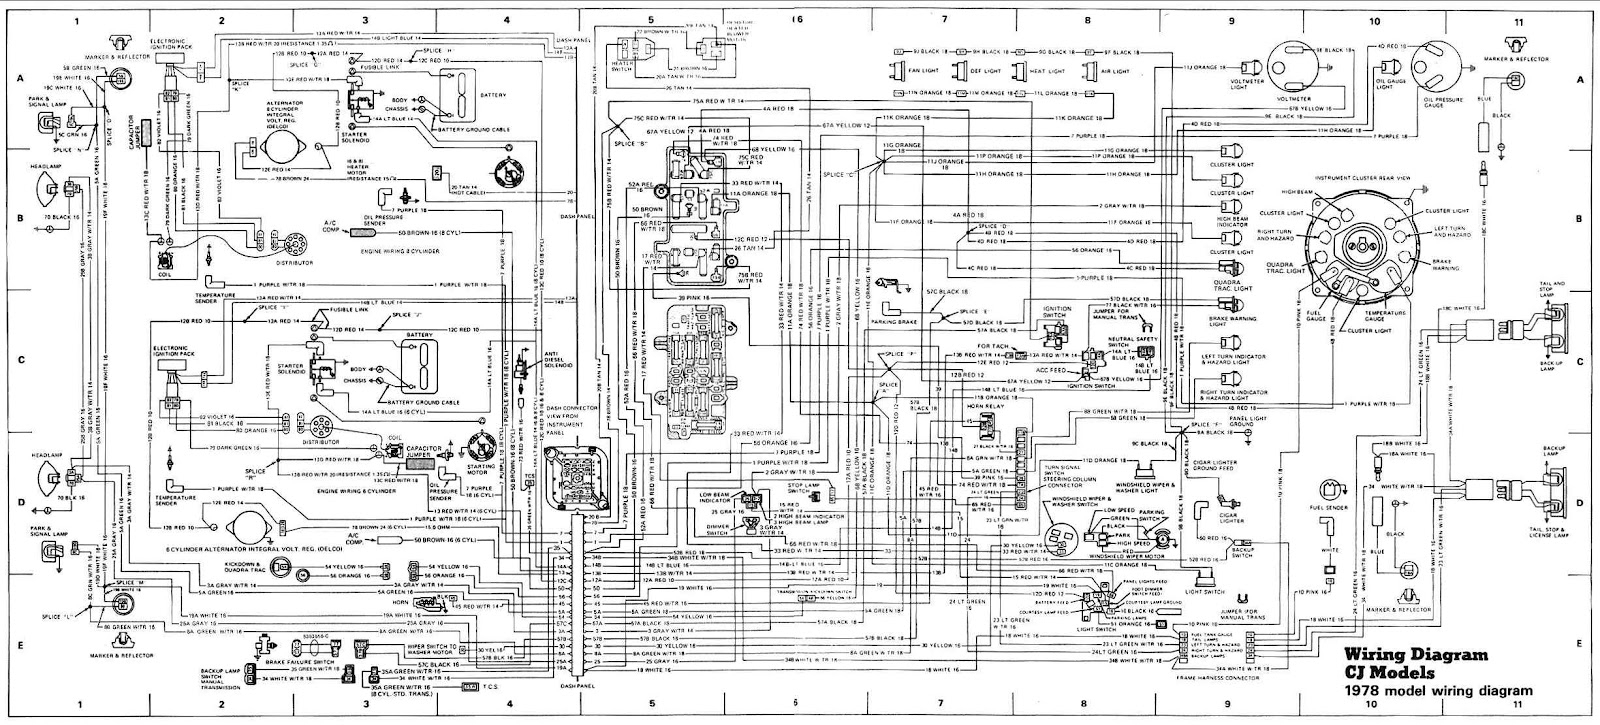 jeep grand cherokee wj stereo system wiring diagrams throughout 1998 jeep grand cherokee parts diagram jeep radio wiring diagram dolgular com 1993 jeep grand cherokee radio wiring diagram at gsmportal.co